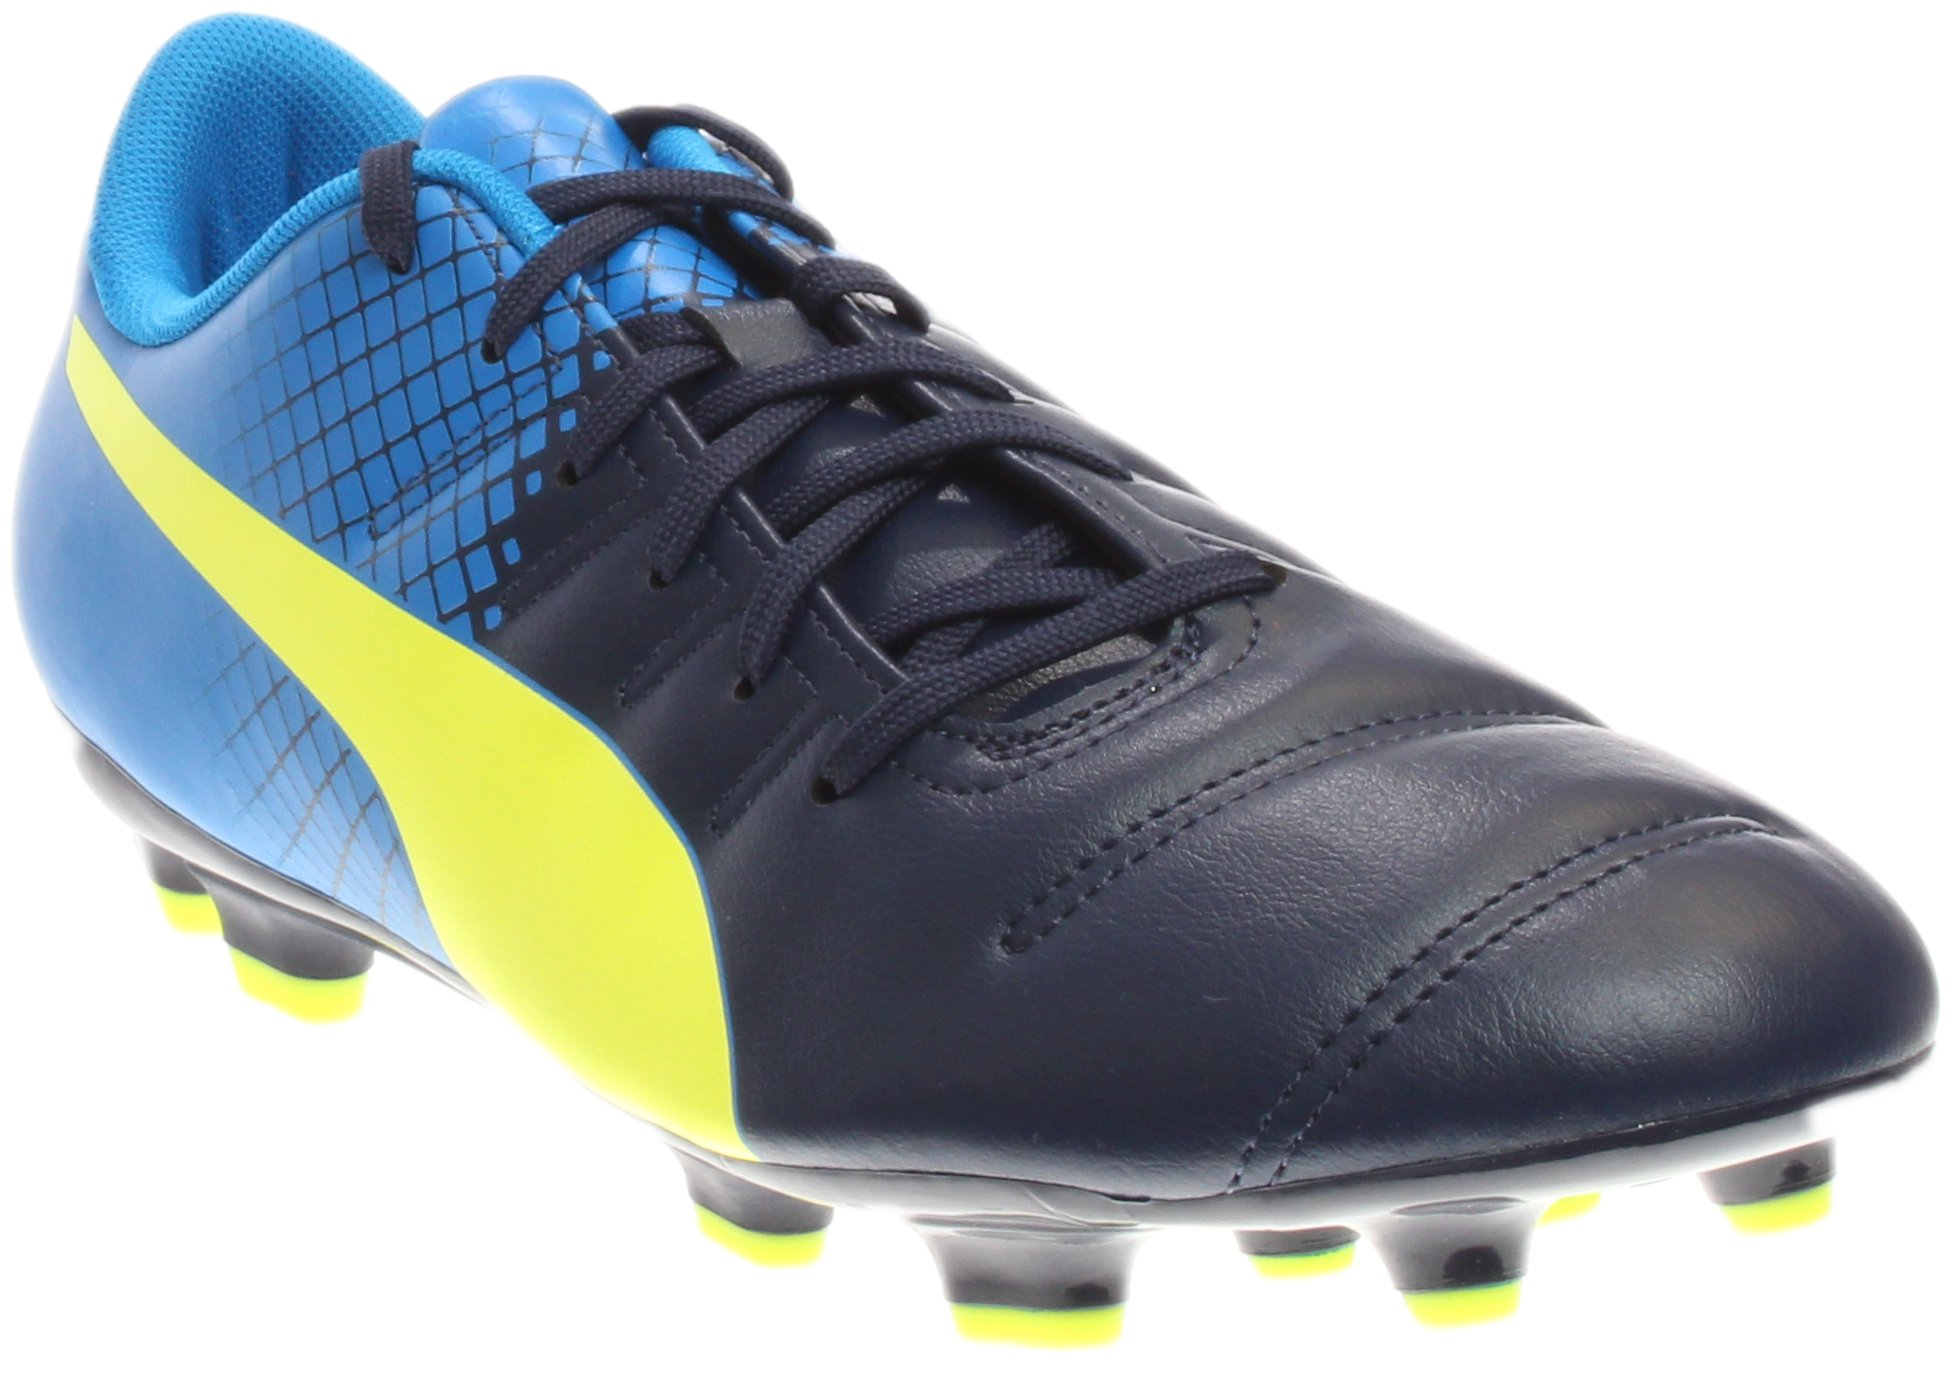 PUMA Evopower 4.3 Tricks FG Men's Firm Ground Soccer Cleats by PUMA